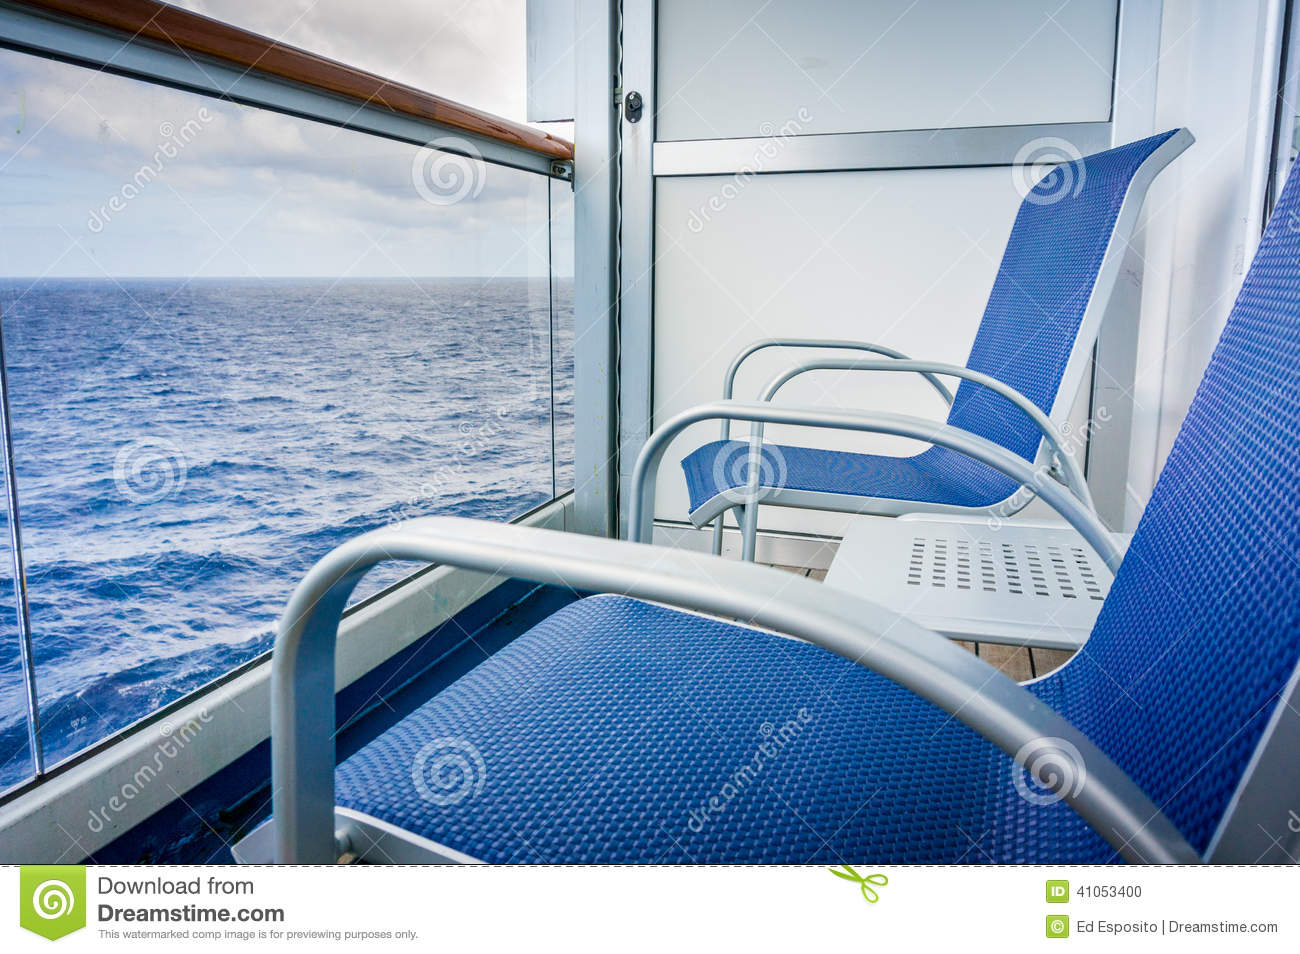 Cruise ship balcony stock photo image 41053400 for Balcony on cruise ship